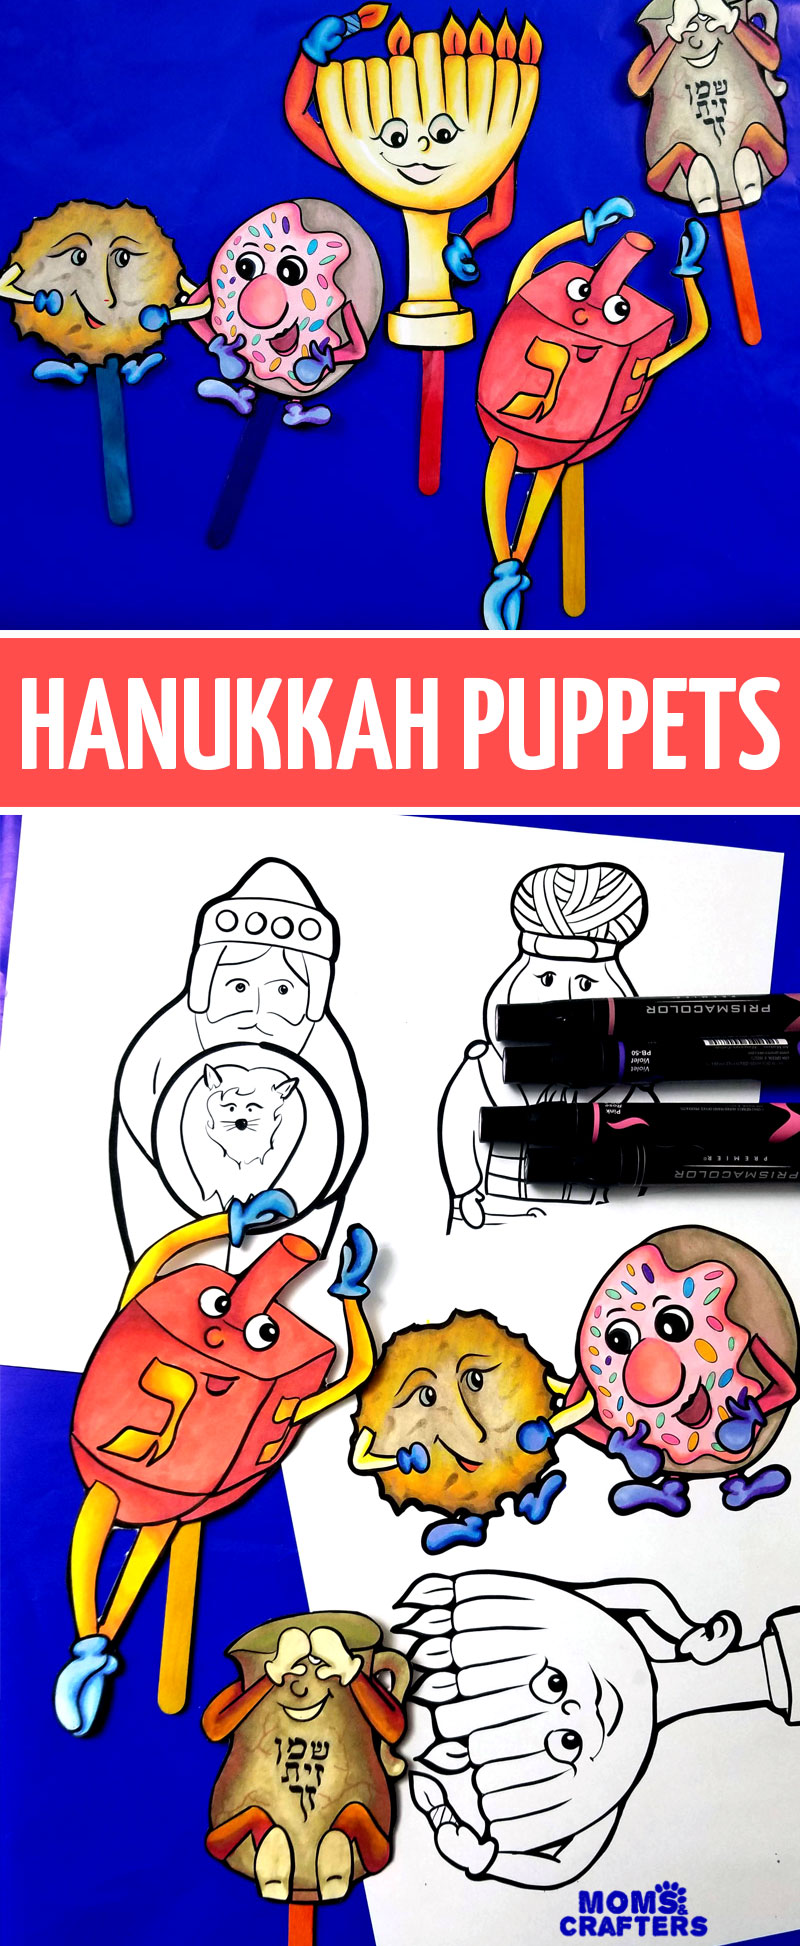 Grab n print these fun, animated Hanukkah puppets - an easy chanukah coloring pages set and activity for kids! This Hannukah paper craft is so much fun for the whole family.